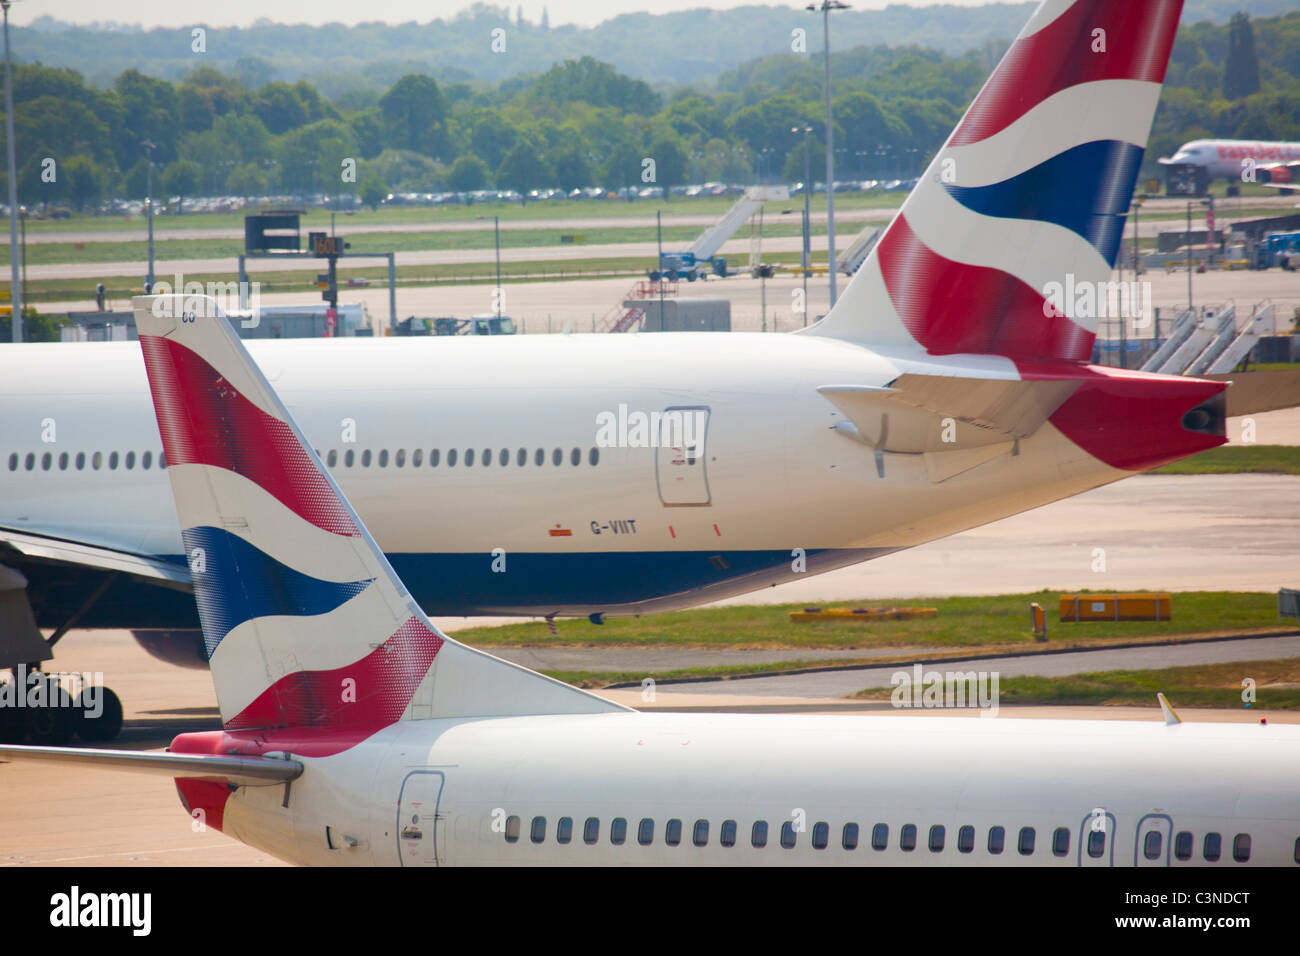 Two British Airways Aeroplanes pass on the tarmac at Gatwick Airport. - Stock Image